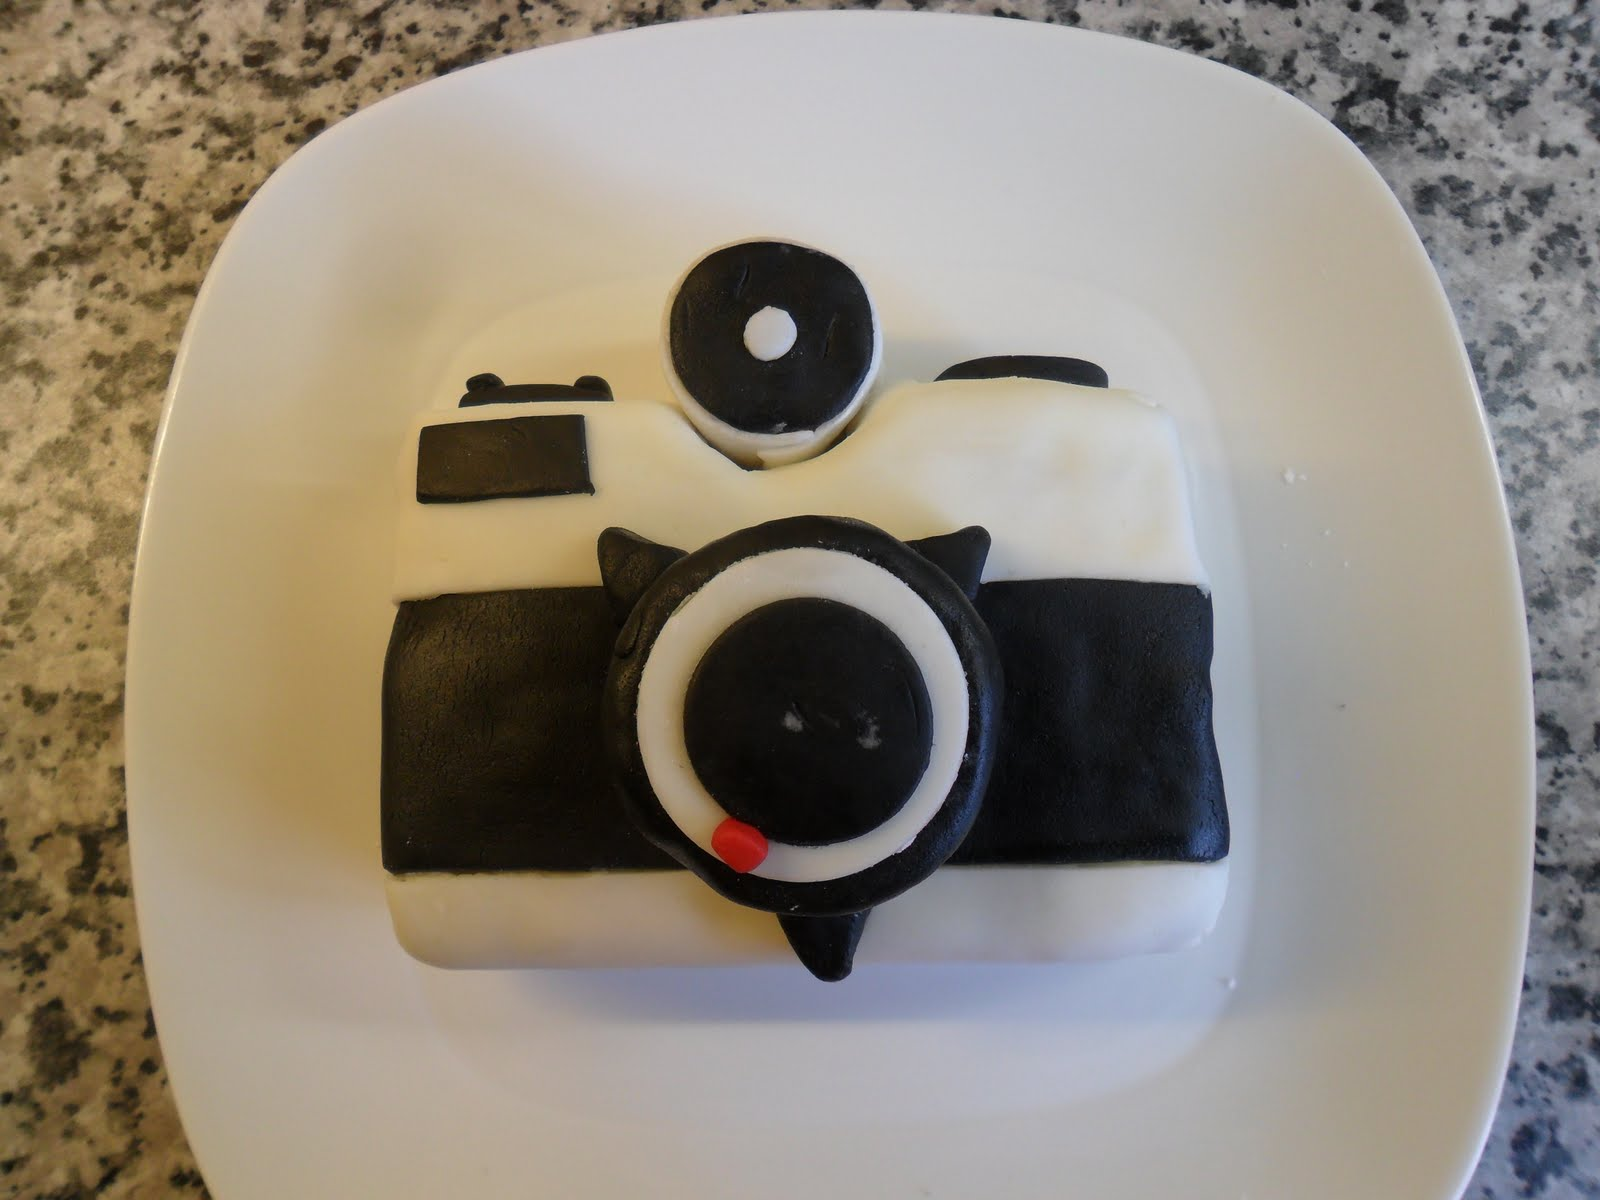 Camera Images For Cake : Cake Design by Fiona Robertson: Fuji Pet Inspired Camera Cake